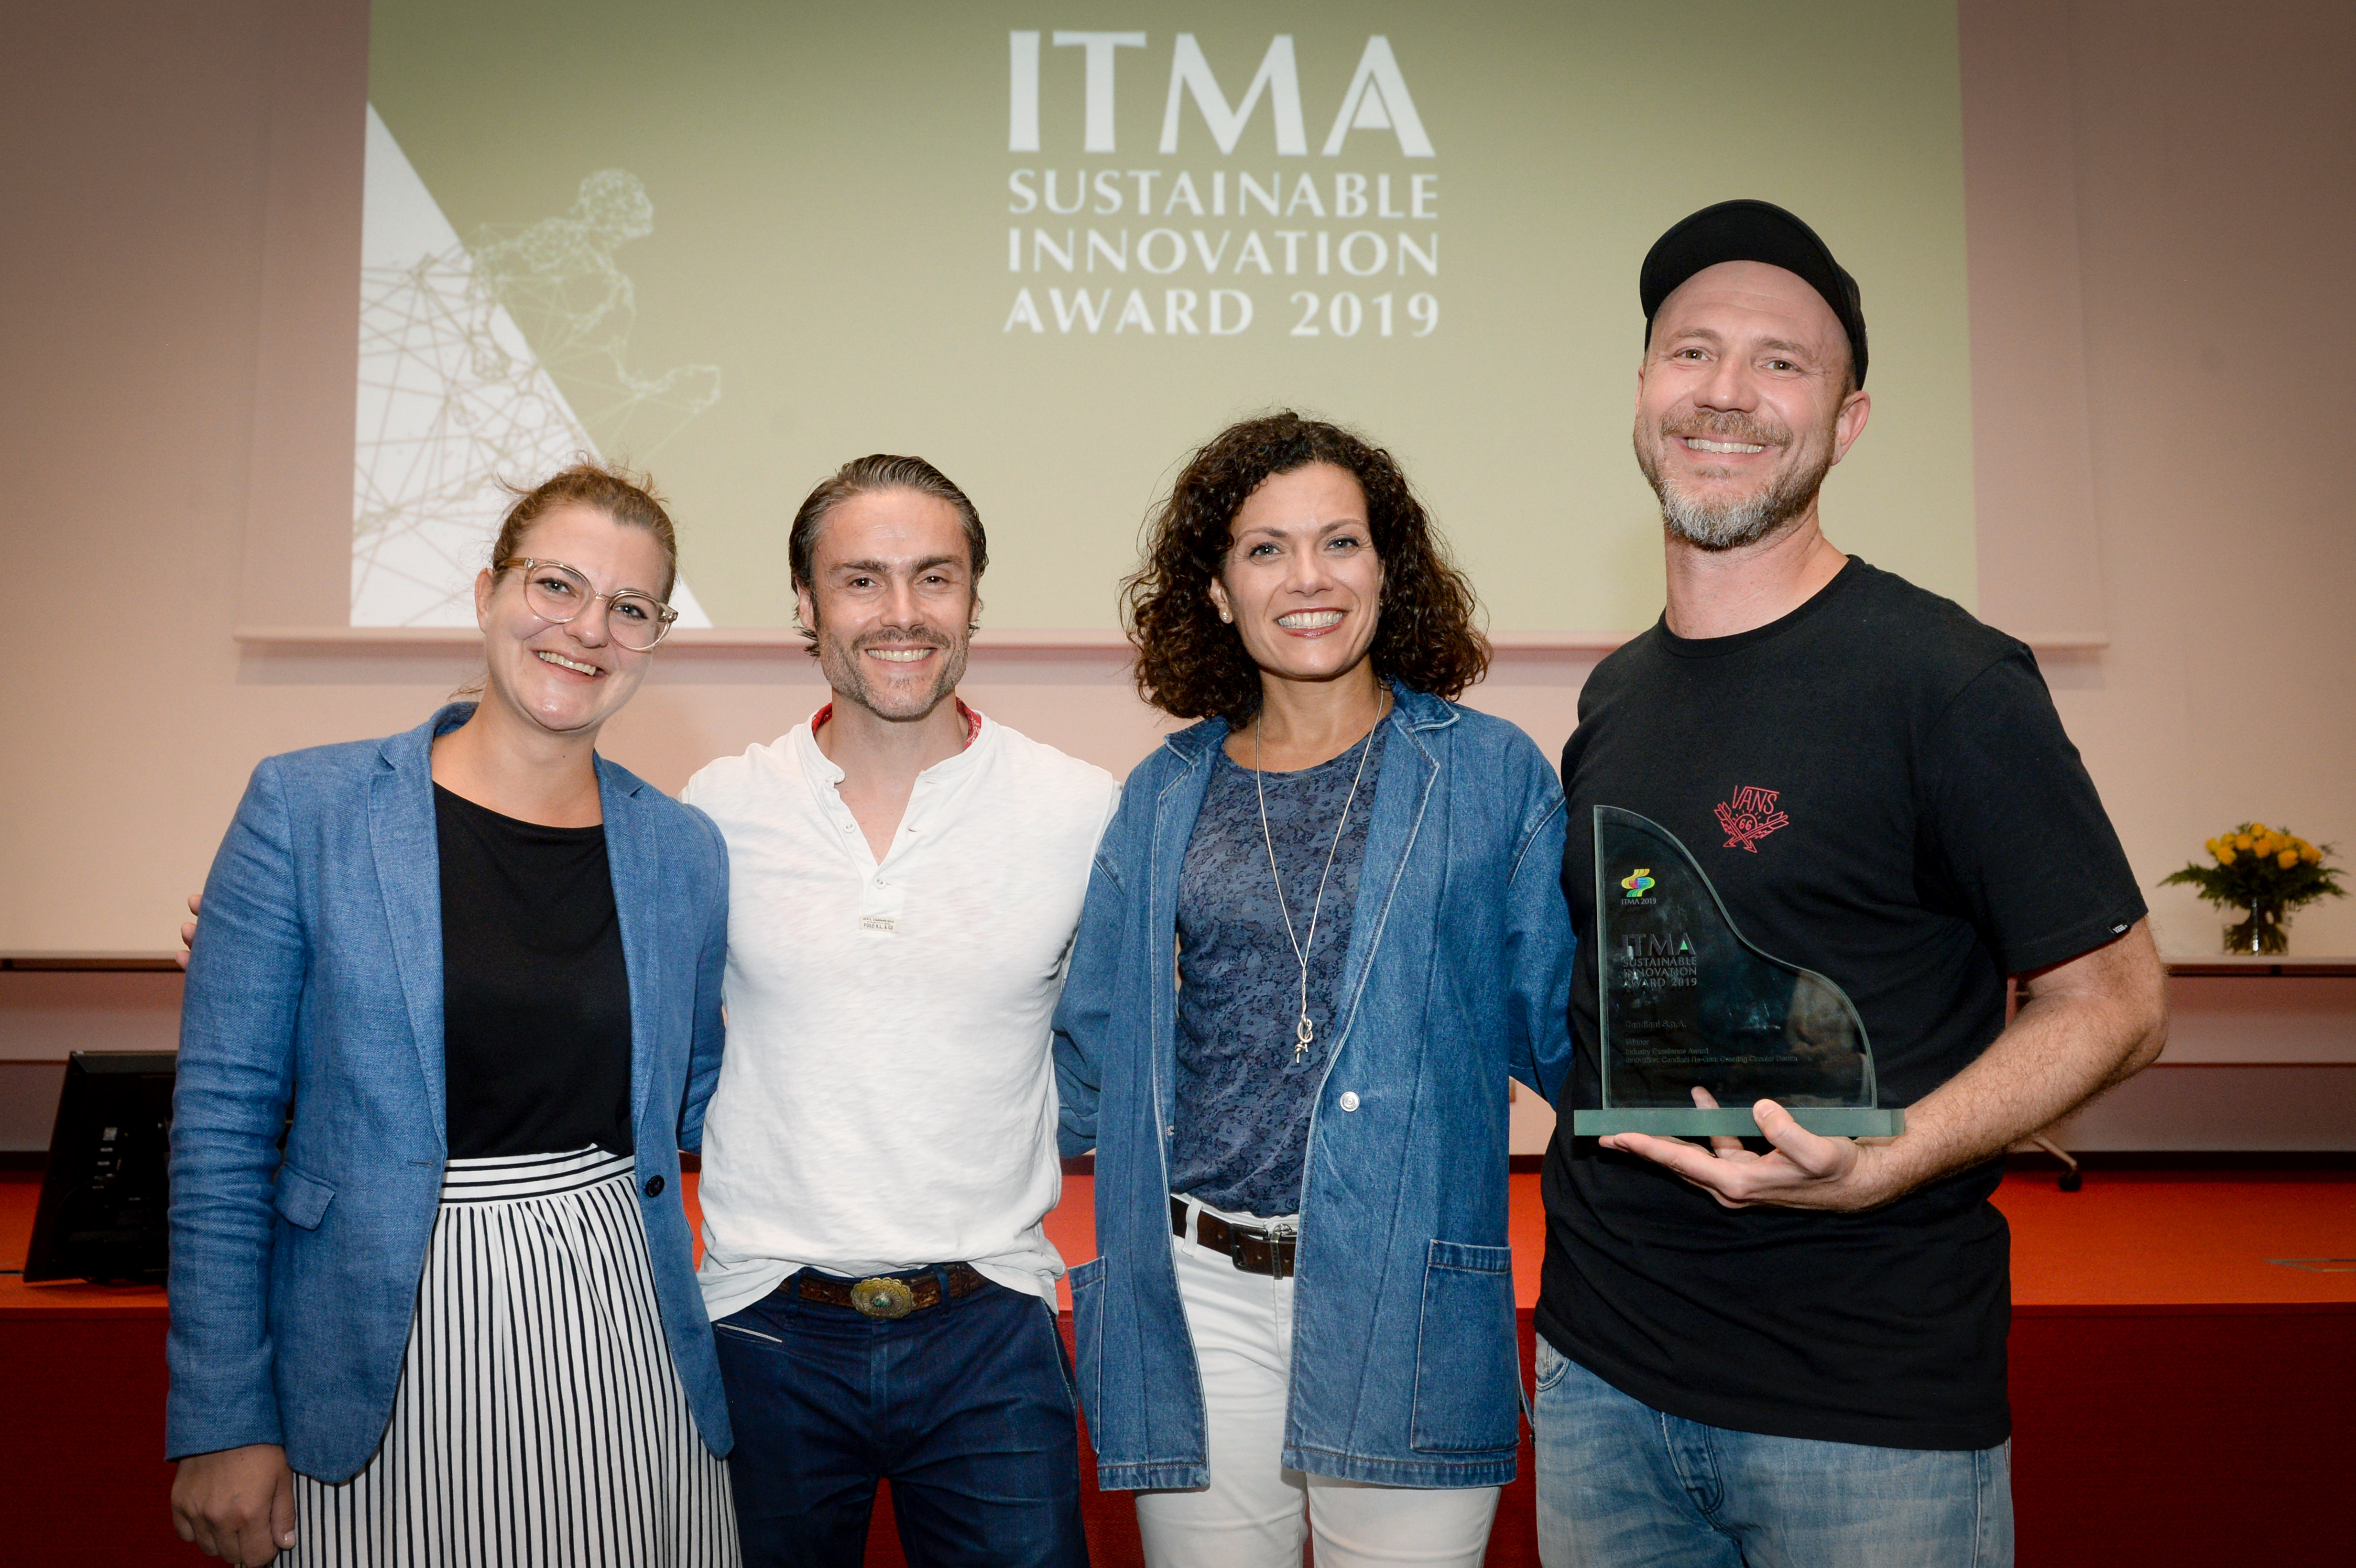 Candiani Denim nabs the Itma Sustainable Innovation Award